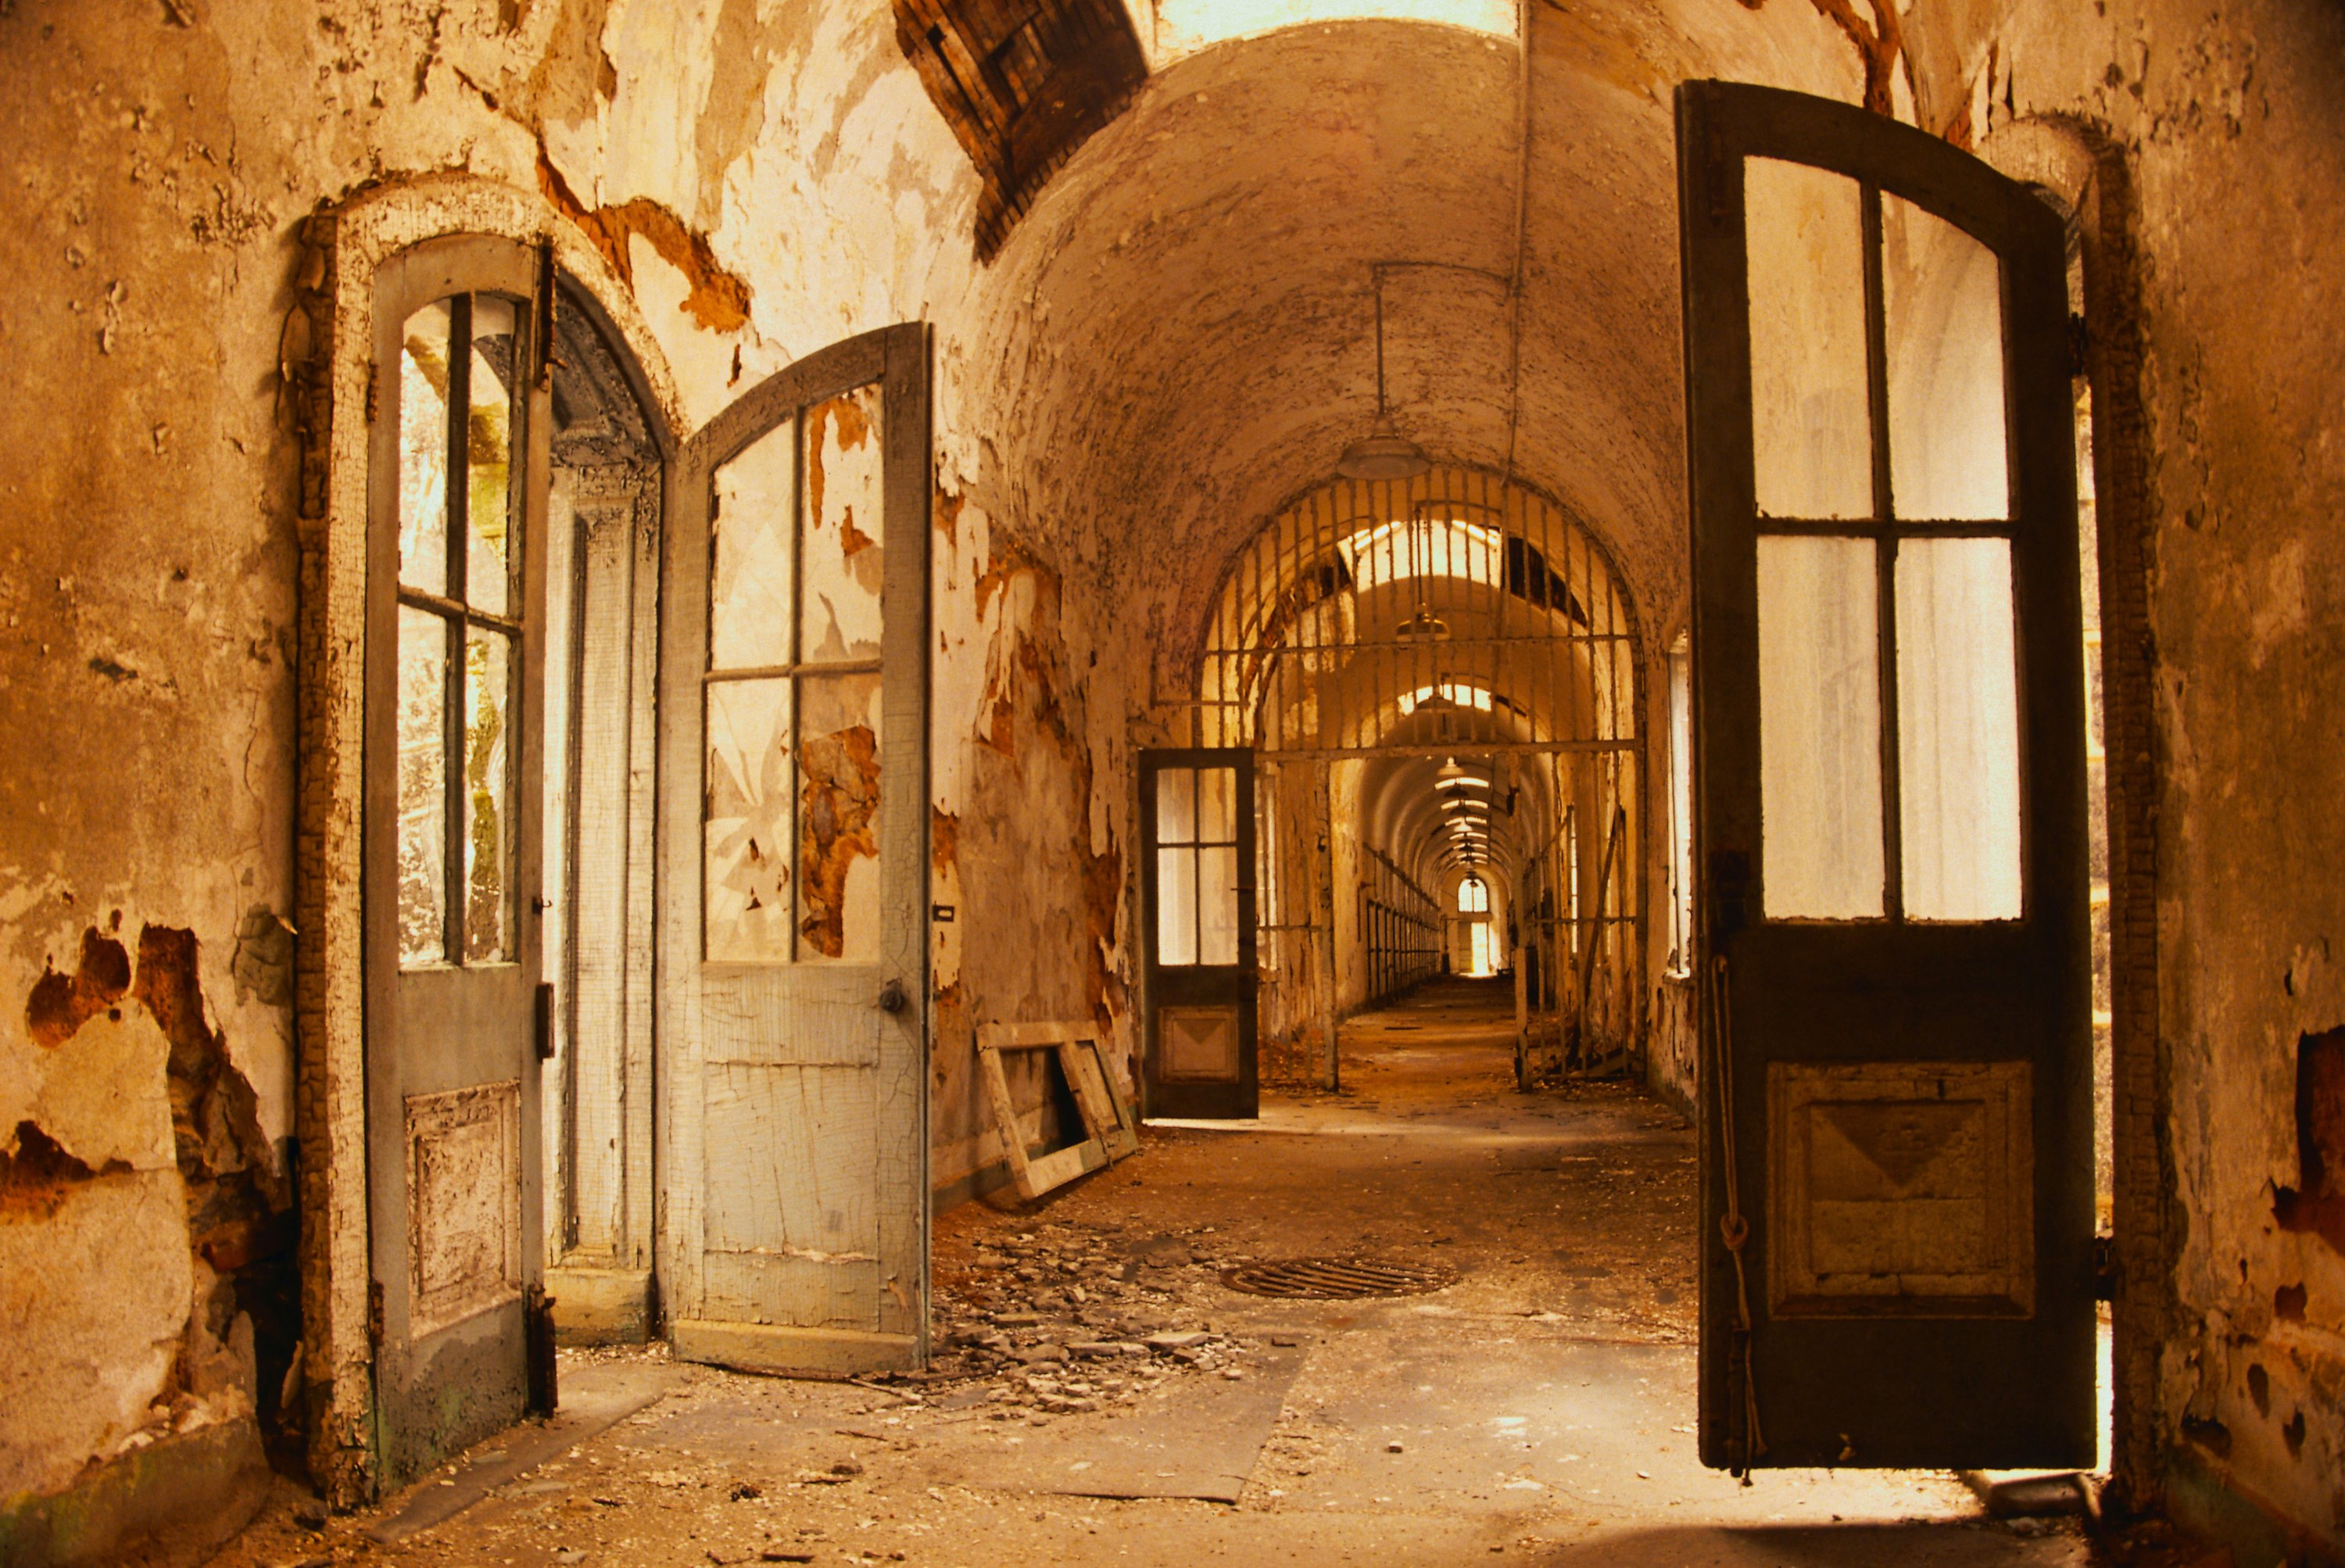 General 3000x2006 abandoned hospital prisons apocalyptic asylum interior hallway brown arch door